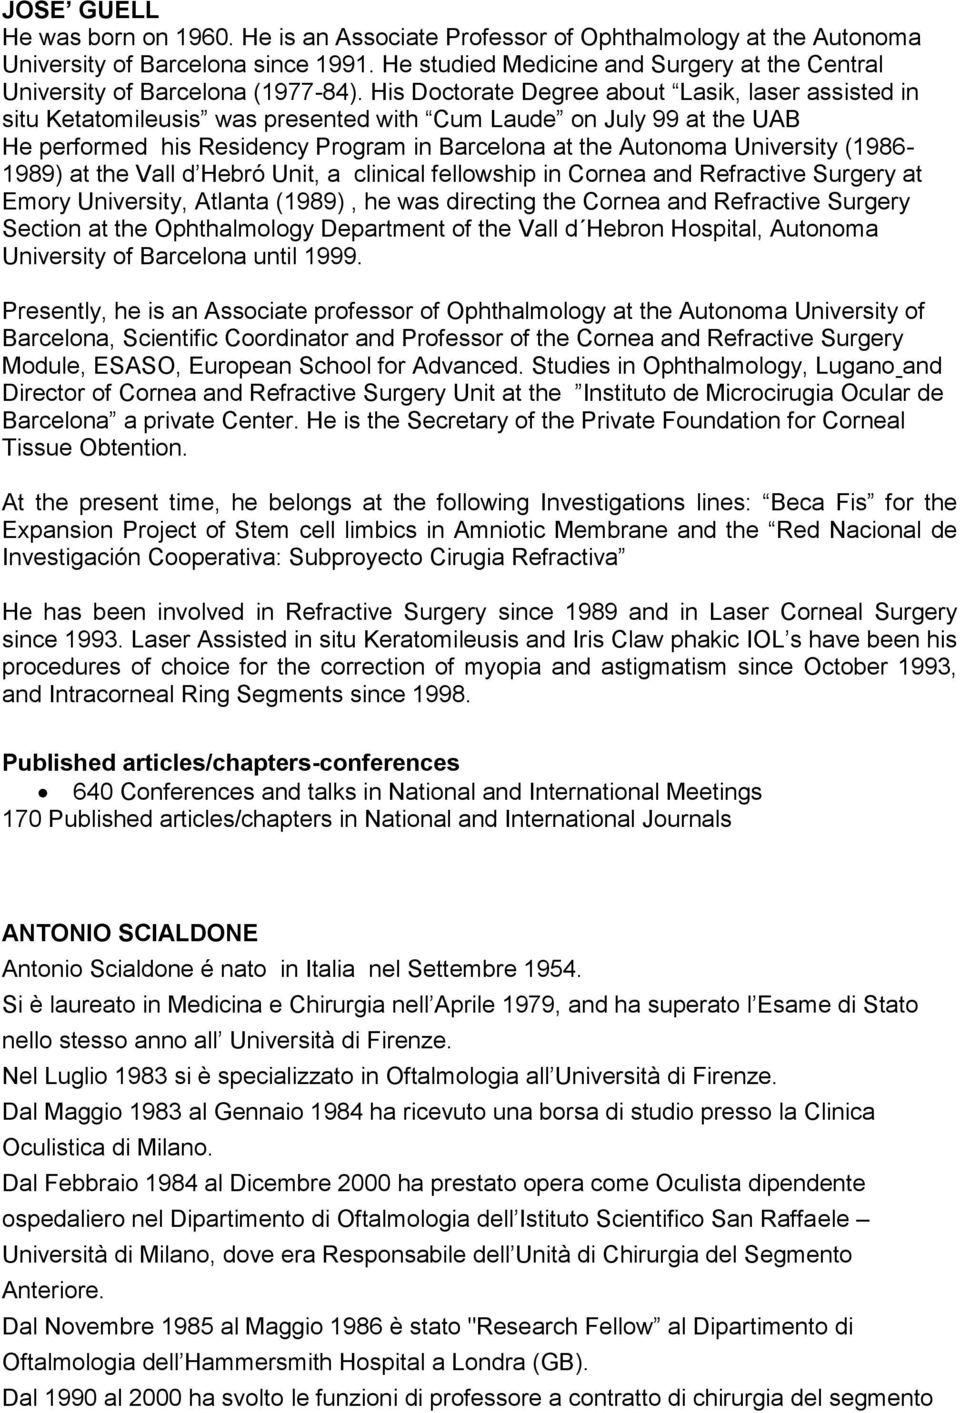 His Doctorate Degree about Lasik, laser assisted in situ Ketatomileusis was presented with Cum Laude on July 99 at the UAB He performed his Residency Program in Barcelona at the Autonoma University